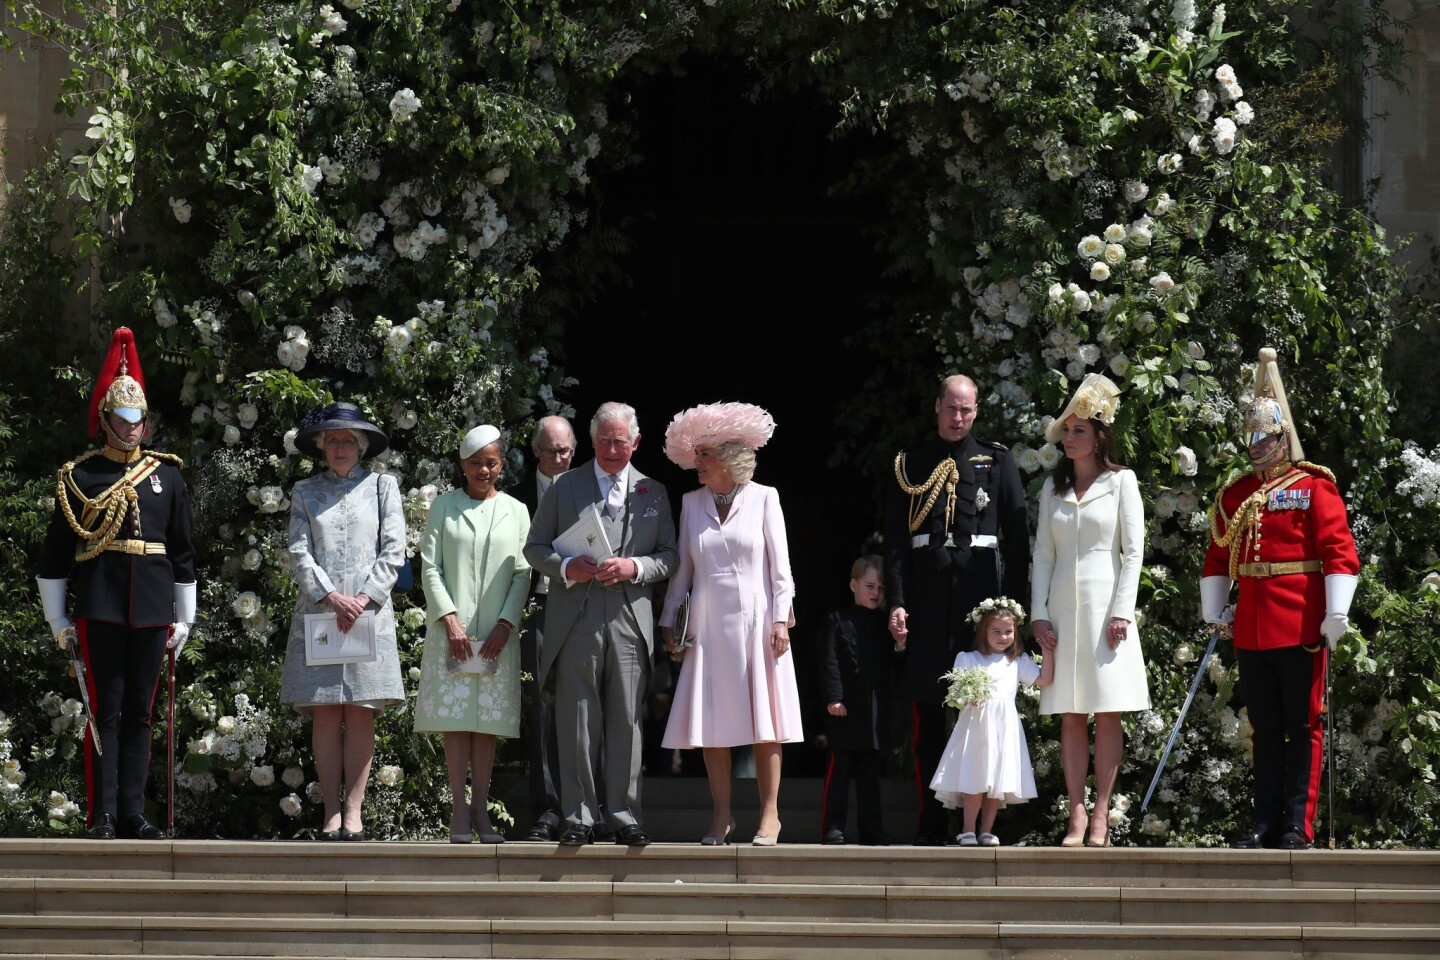 After the ceremony outside Windsor Castle, from left, Lady Jane Fellowes, sister of Princess Diana; Doria Ragland, mother of the bride; Prince Charles, Prince of Wales, and Camilla, Duchess of Cornwall; Prince William, Duke of Cambridge, and Catherine, Duchess of Cambridge with Prince George and Princess Charlotte.